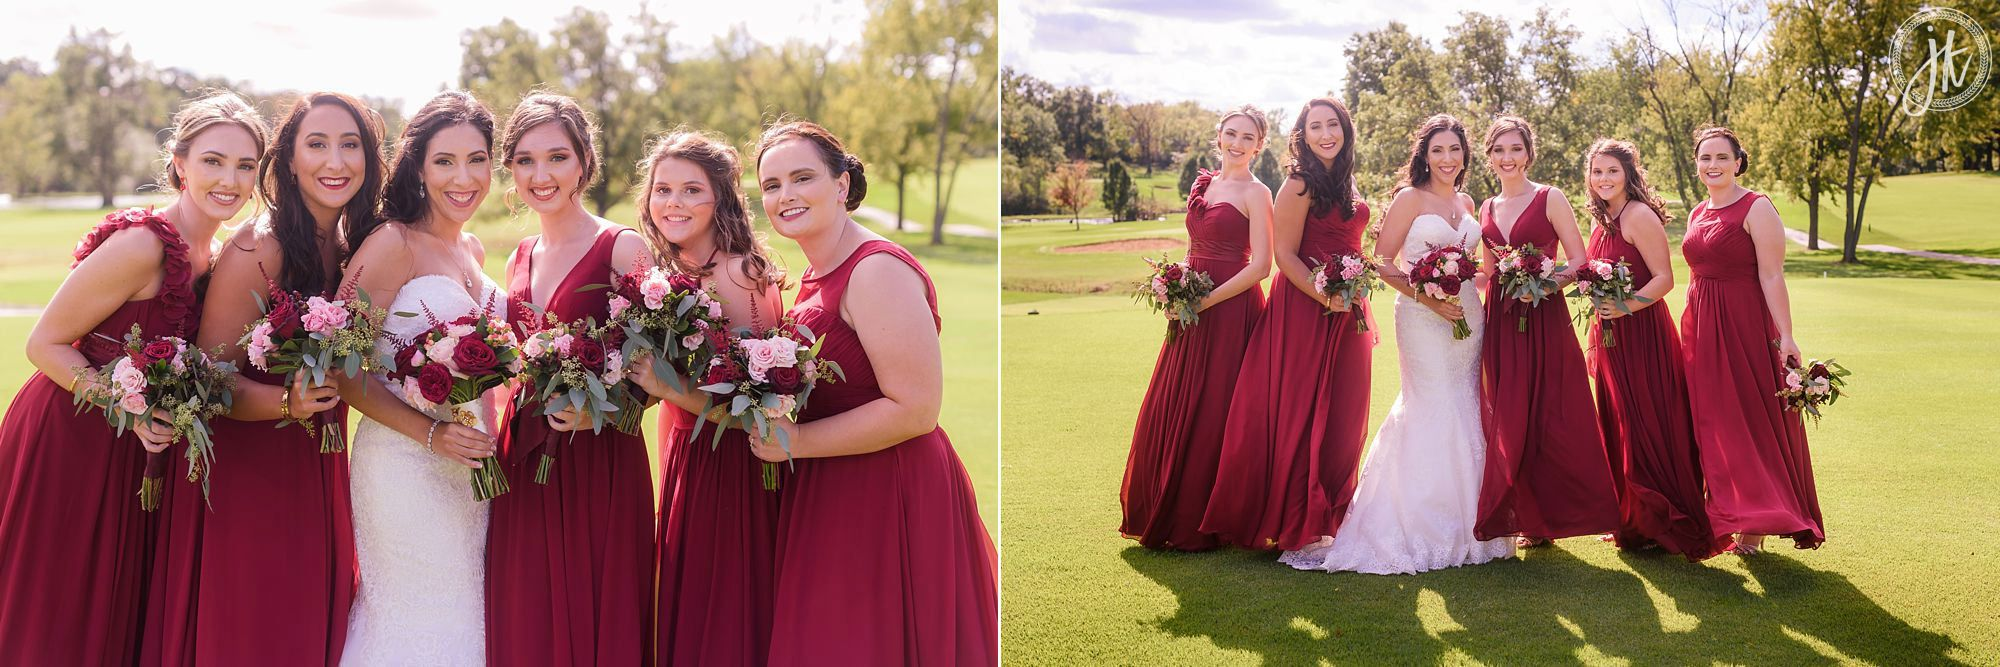 Columbia country club in columbia missouri bride and bridesmaids